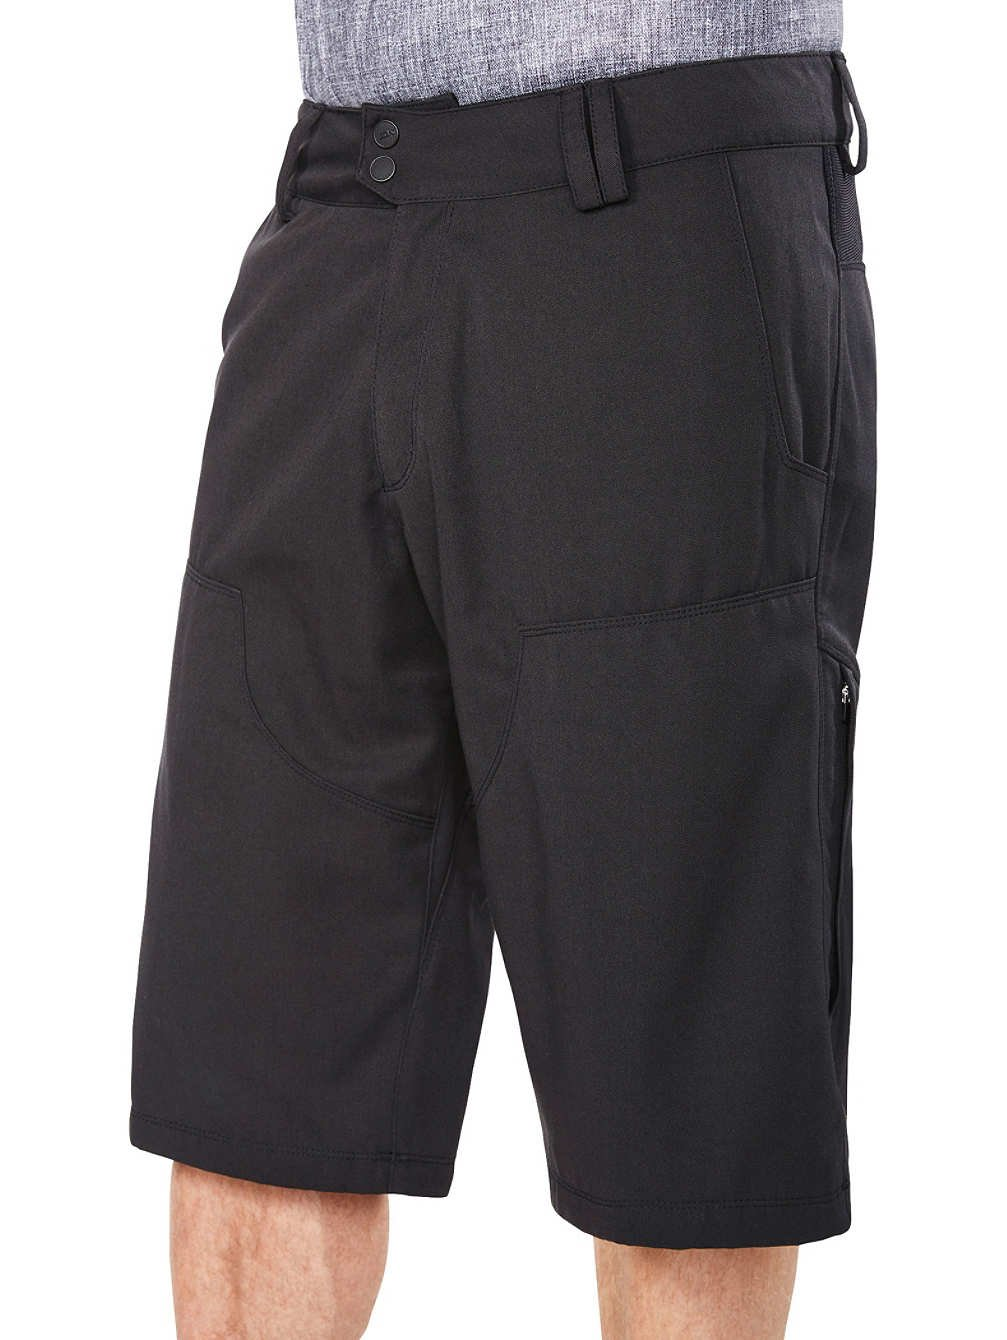 Dakine 8 Track Short - Men's Black, S